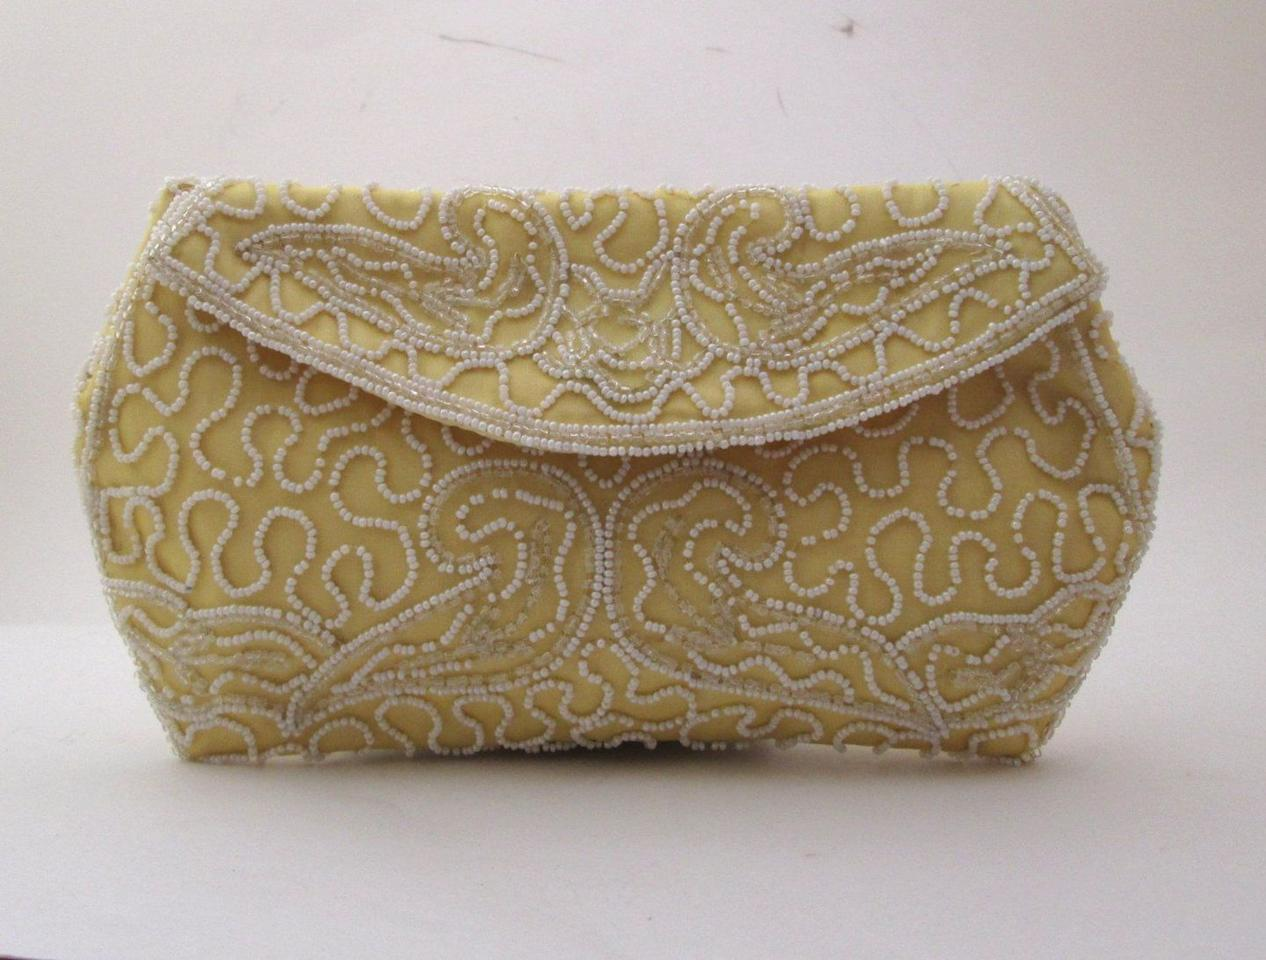 <p>Hilde Weinberg, one of the most famous handbag designers in the mid-1900s, created this delicately beaded yellow clutch in the 1950s. </p>